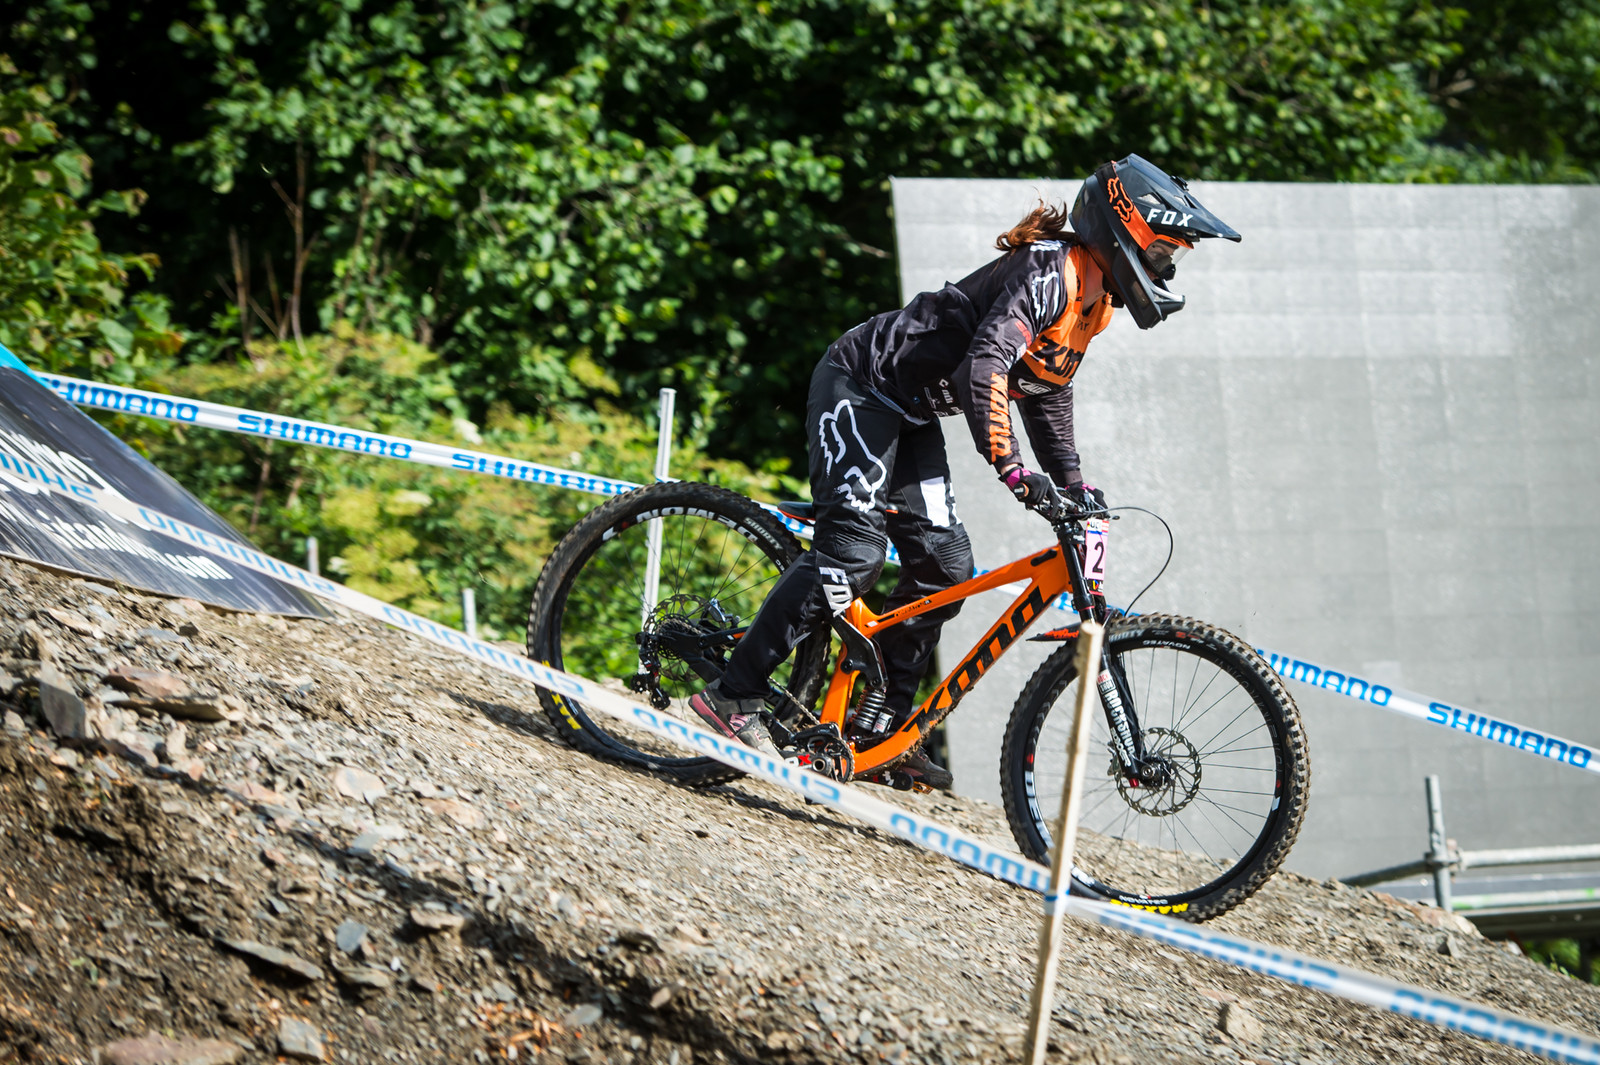 Kona G-Out - G-Out Project: Andorra World Cup 2017 - Mountain Biking Pictures - Vital MTB